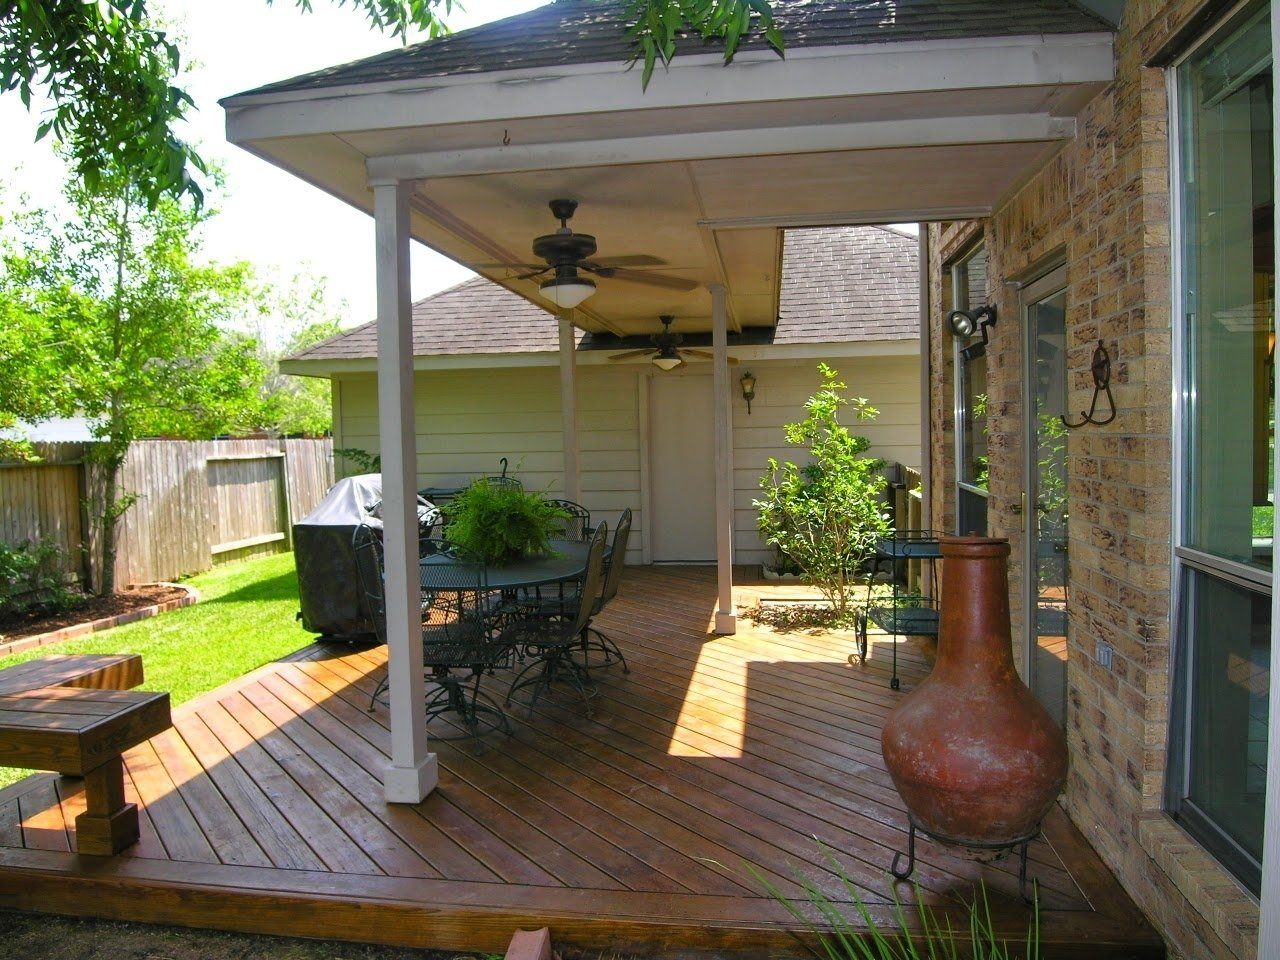 10 Best Back Porch Ideas For Houses porch ideas part small back decorating houses house plans 66846 2021